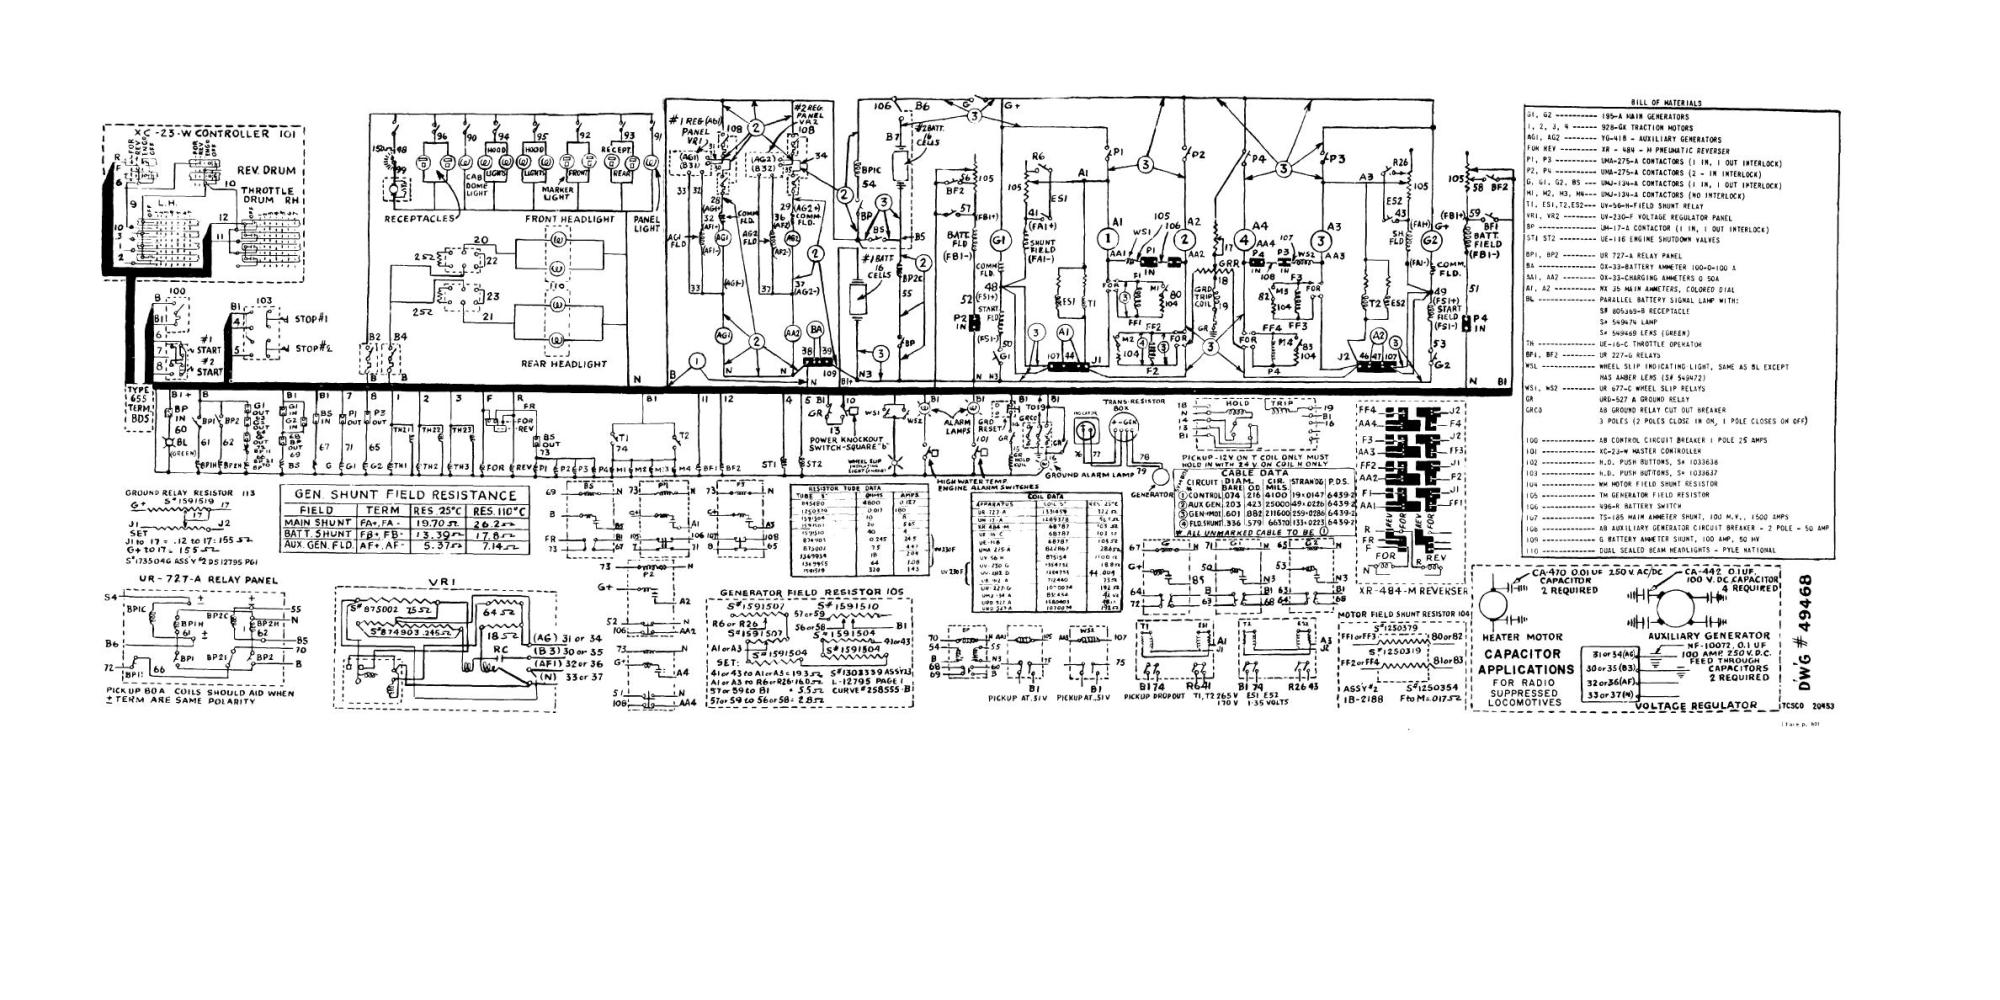 hight resolution of figure 44 locomotive wiring diagram locomotive wiring diagram locomotive wiring diagrams source electric locomotive of a engineering